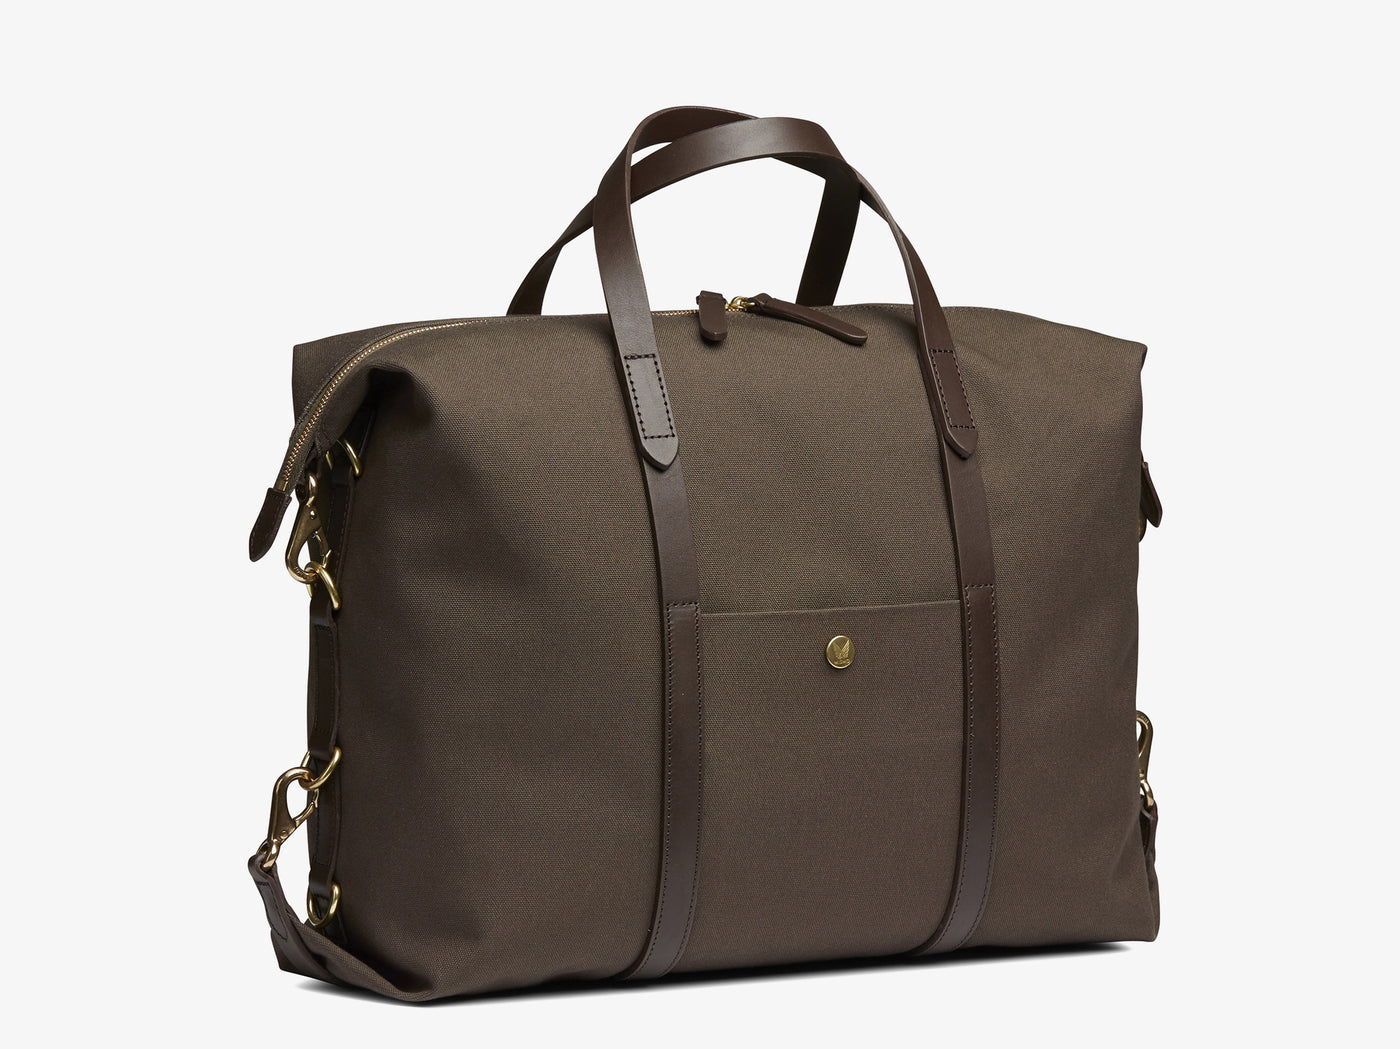 M/S Utility – Army/Dark brown -  Tote bag - Mismo